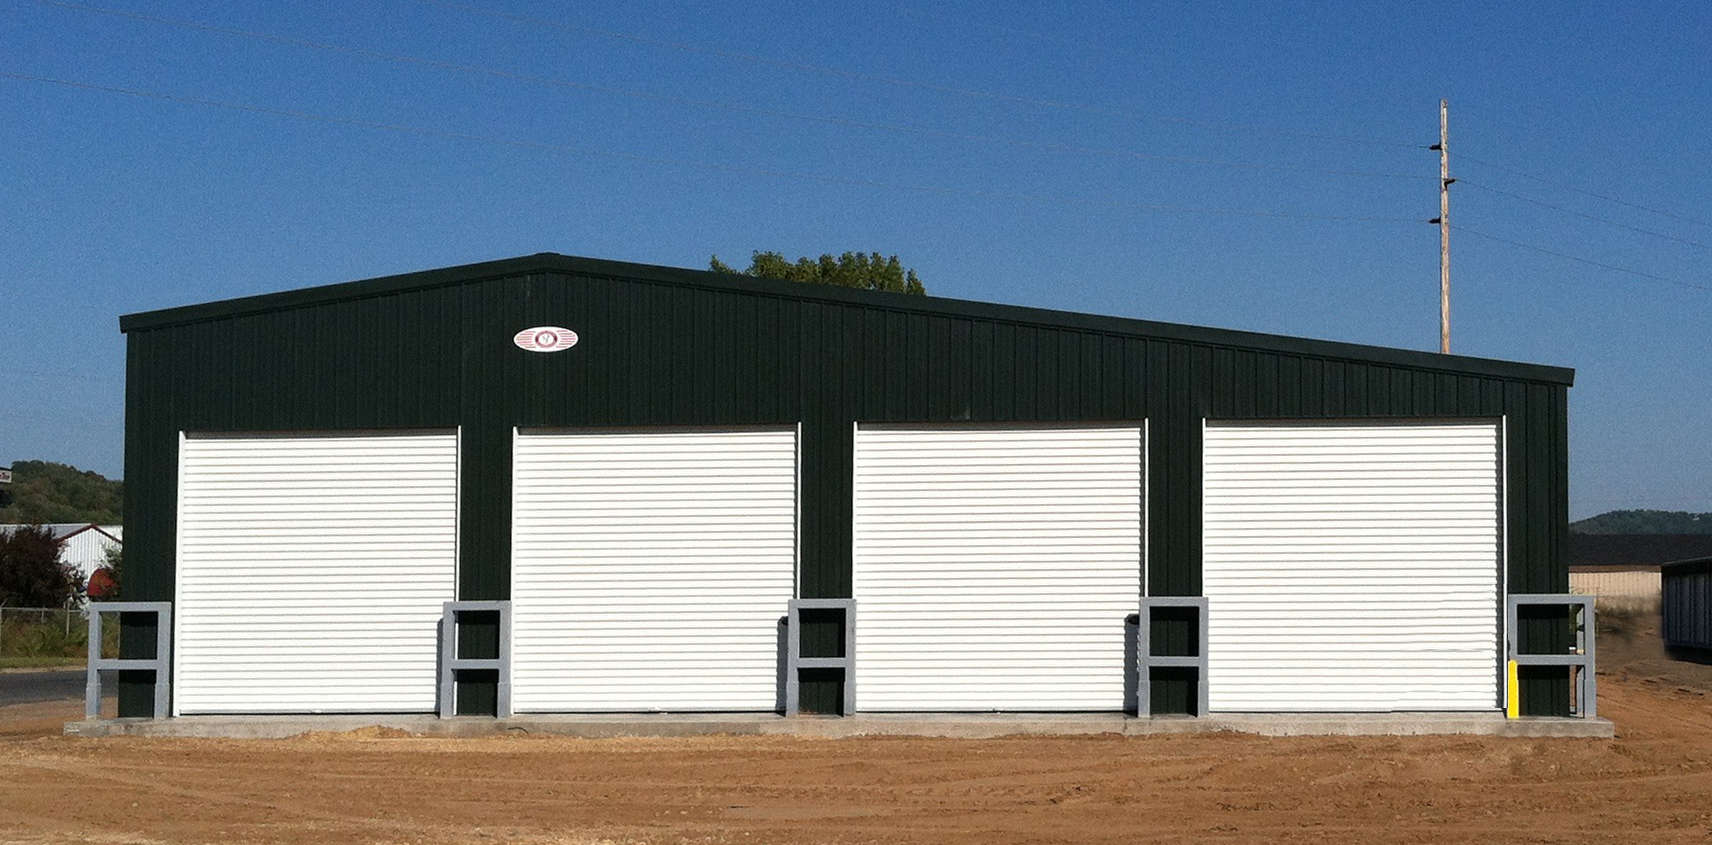 Etonnant Oversized Units With Extra Large Doors Are Available At This Site, Which  Are Ideal For RV/Boat Storage.